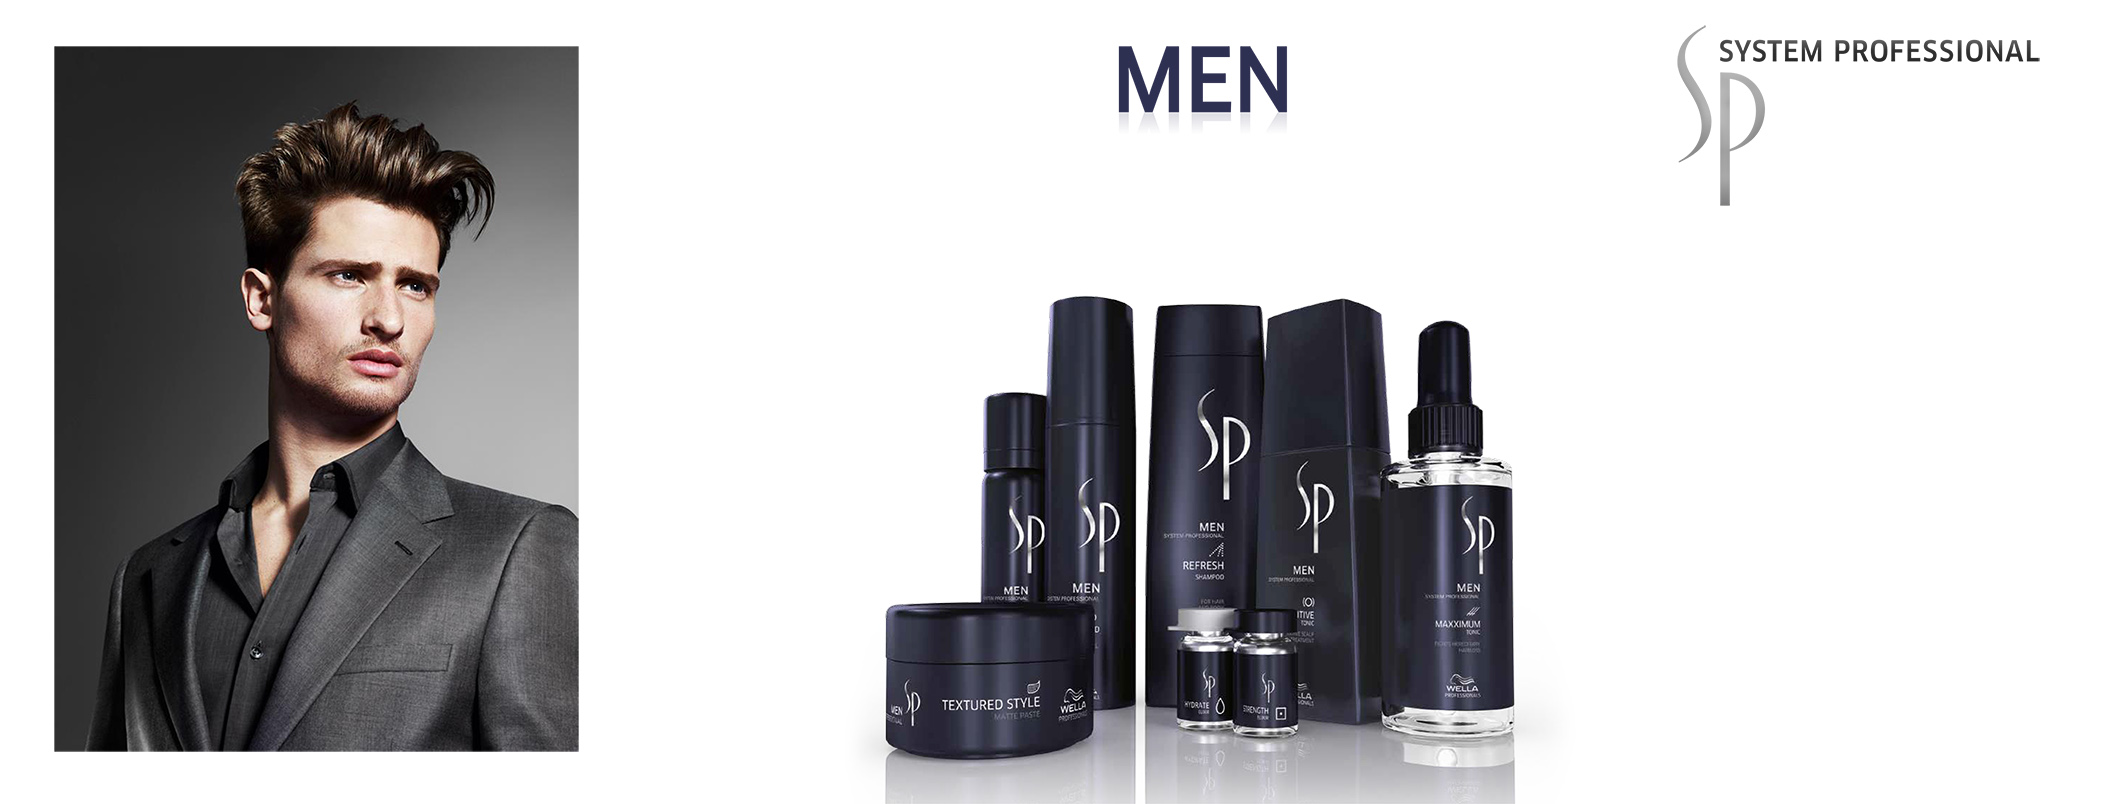 sp wella men eduardosouto.com